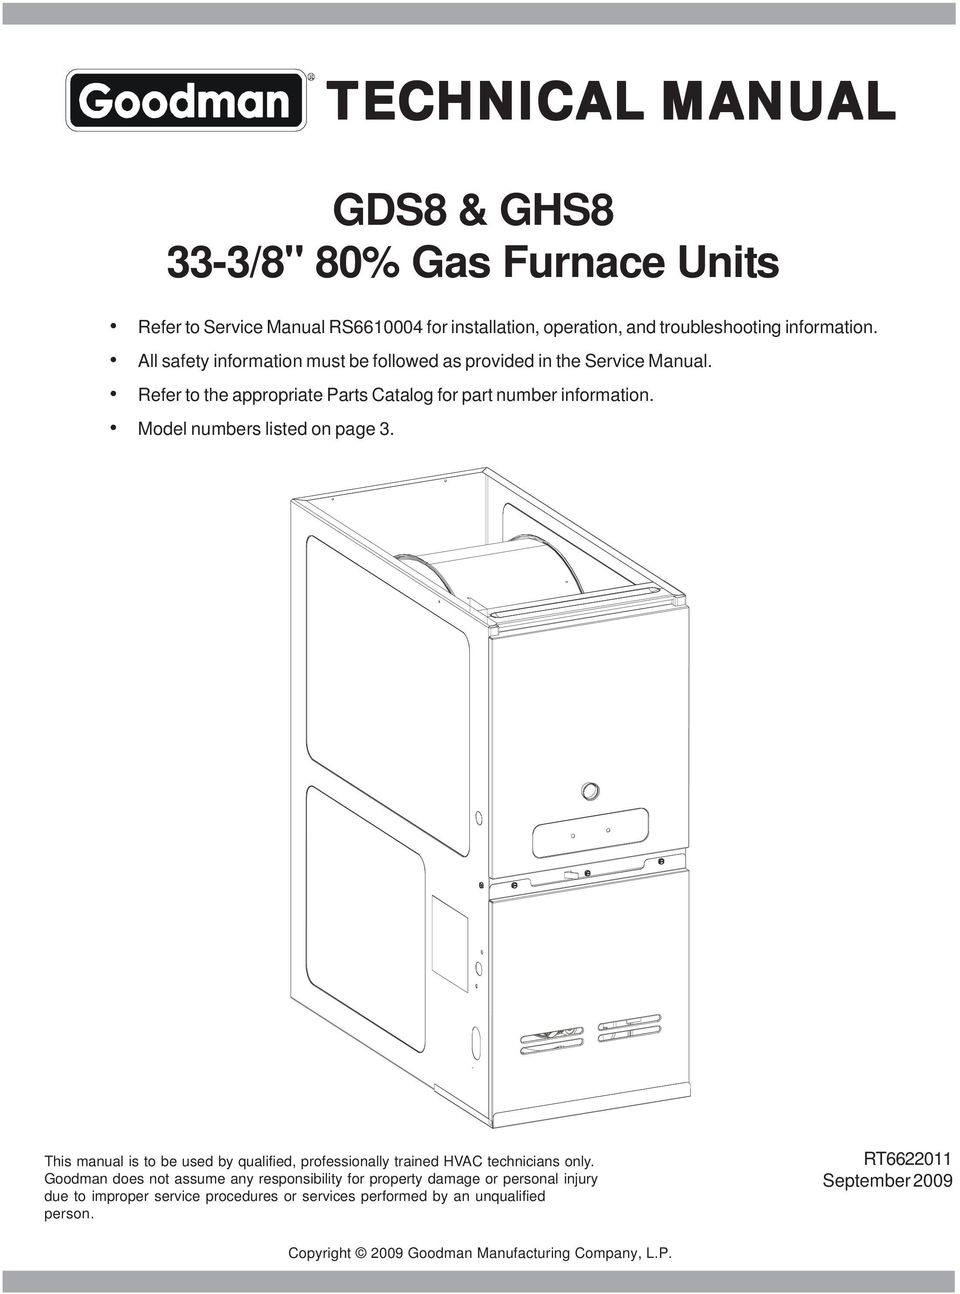 Technical Manual Gds8 Ghs8 Pdf Goodman Furnace Wiring Diagram For Gas Units This Is To Be Used By Qualified Professionally Trained Hvac Technicians Only